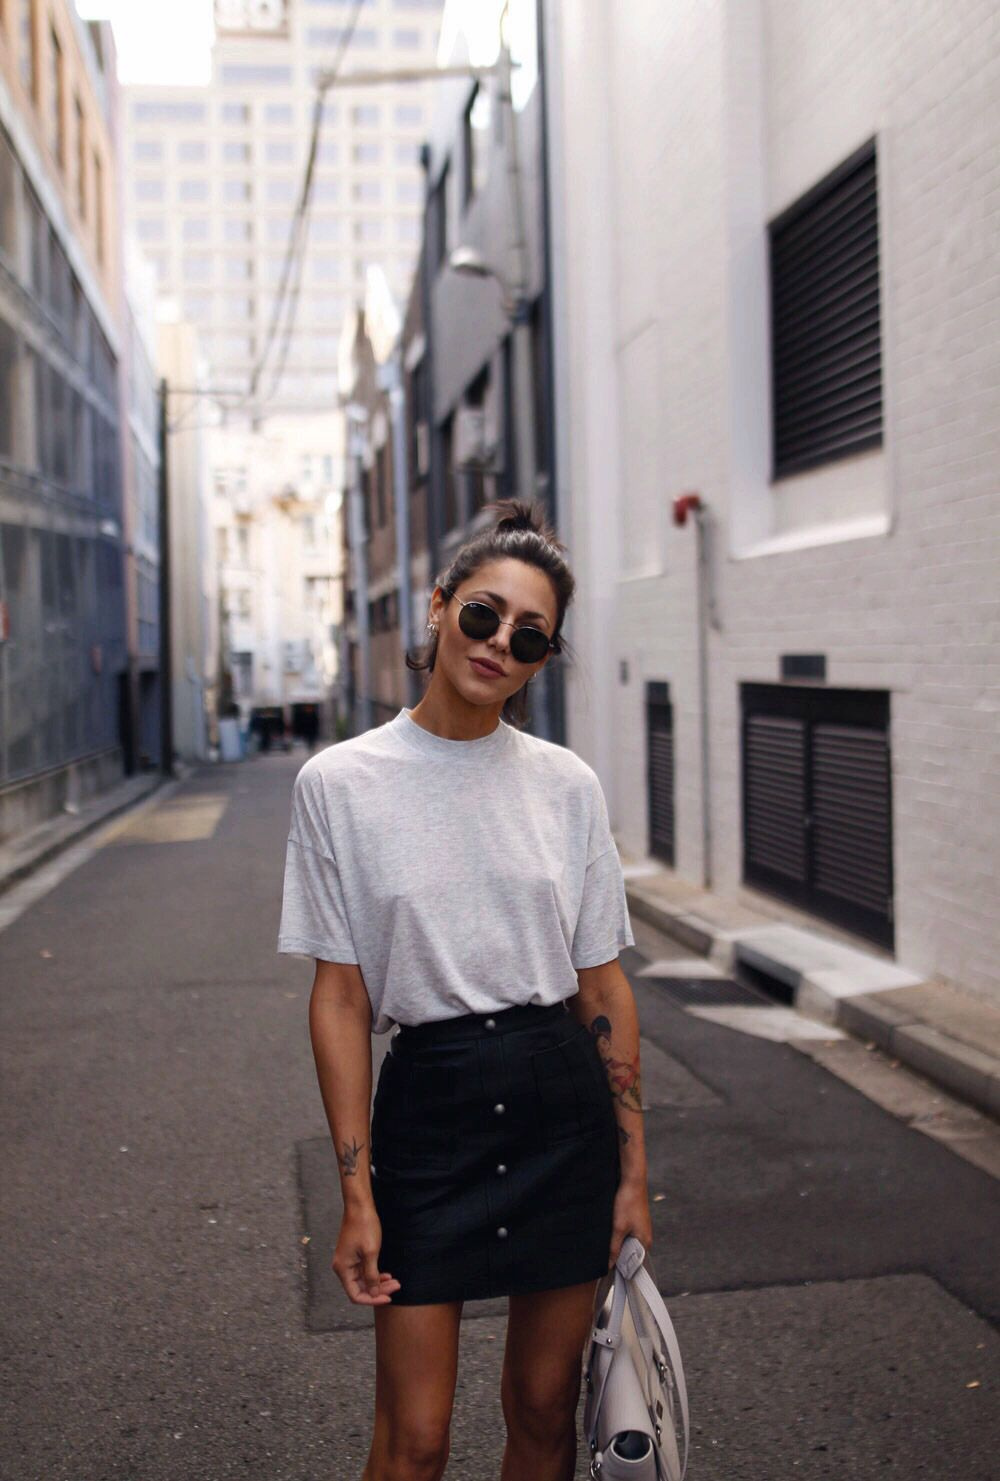 Simple outfit for spring - button up skirt, plain tee shirt, high bun and sunglasses